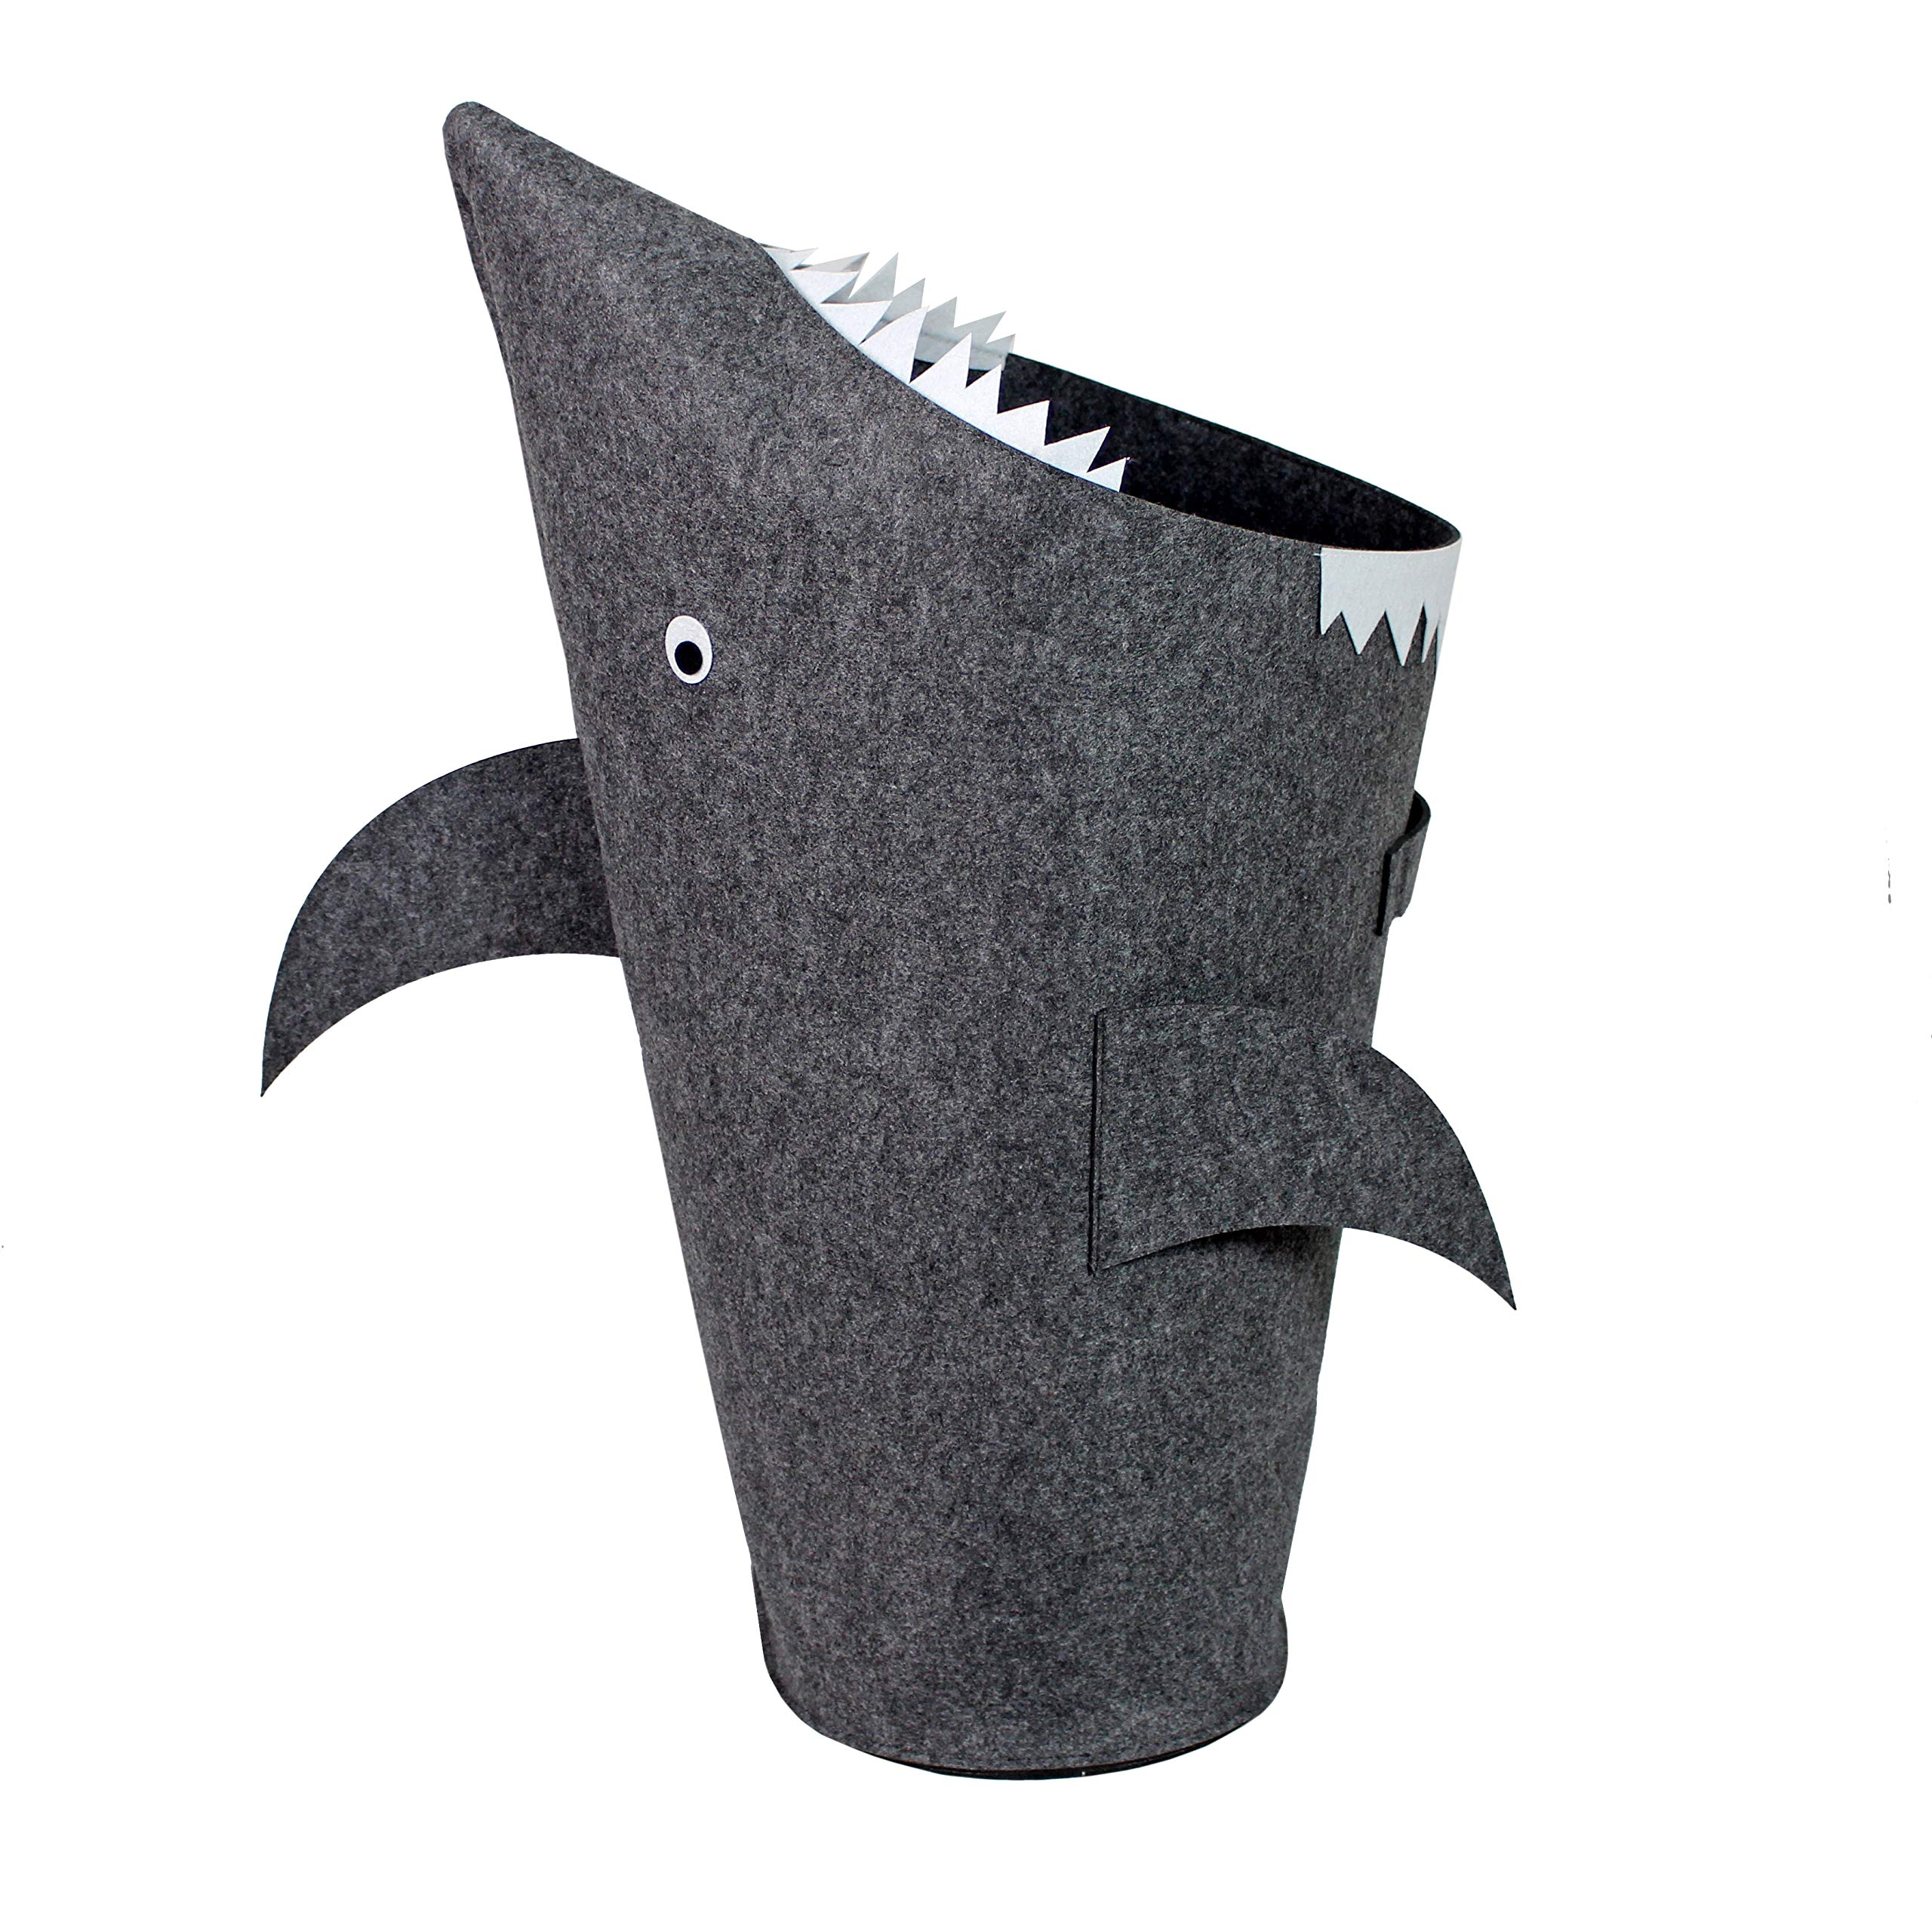 Bins and Things Shark Kids Laundry hamper